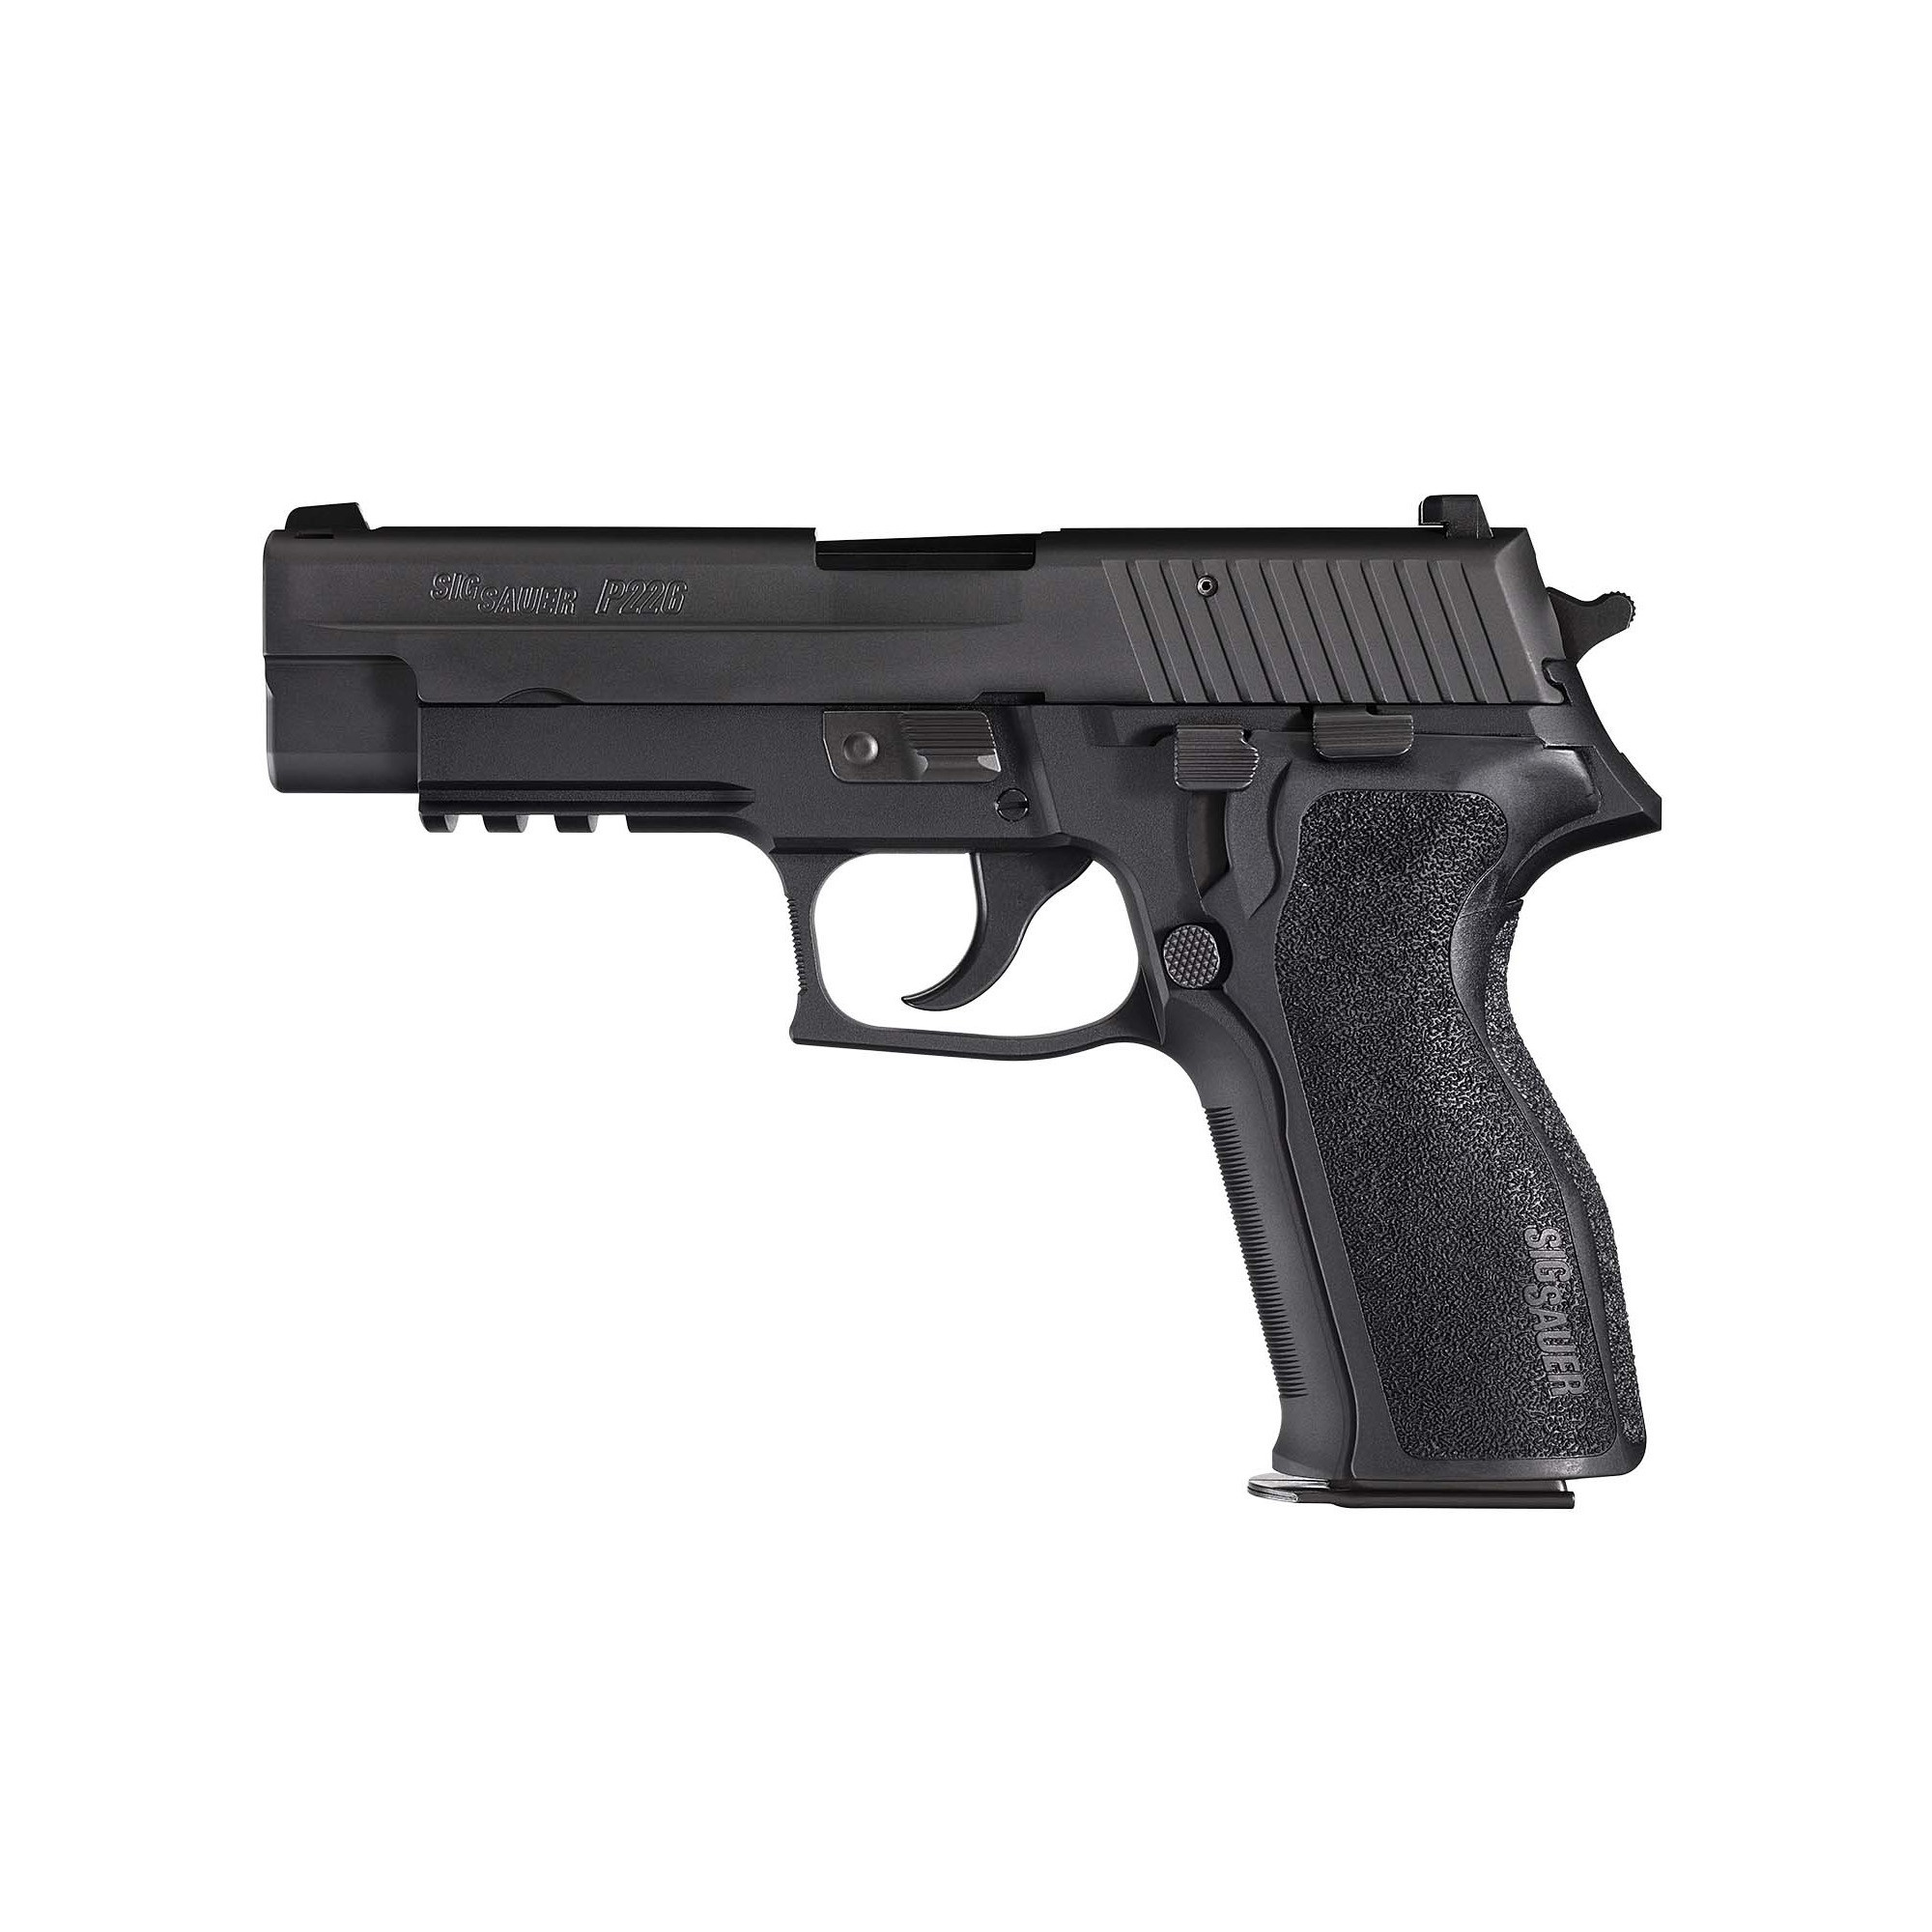 "Sig Sauer Sig Sauer P226 Semi-automatic Double Action Full 9MM 4.4"" Alloy Blue Plastic 15Rd 1 Mag Tac Rail Decocker Fixed Night Sights"